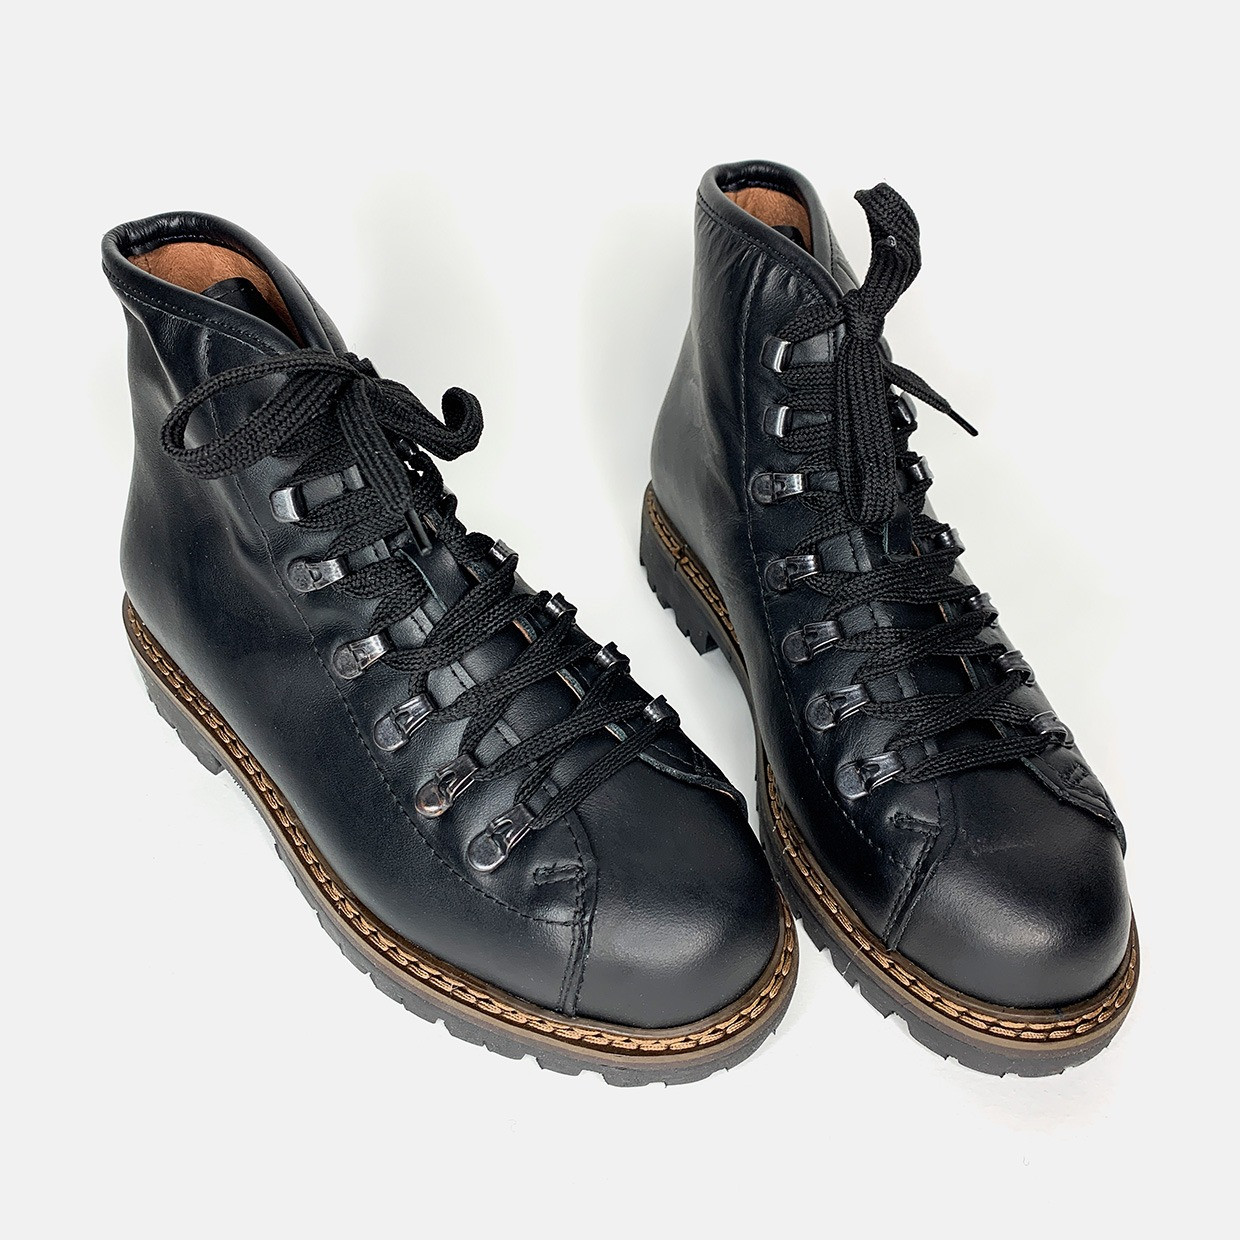 The WHATEVER boots